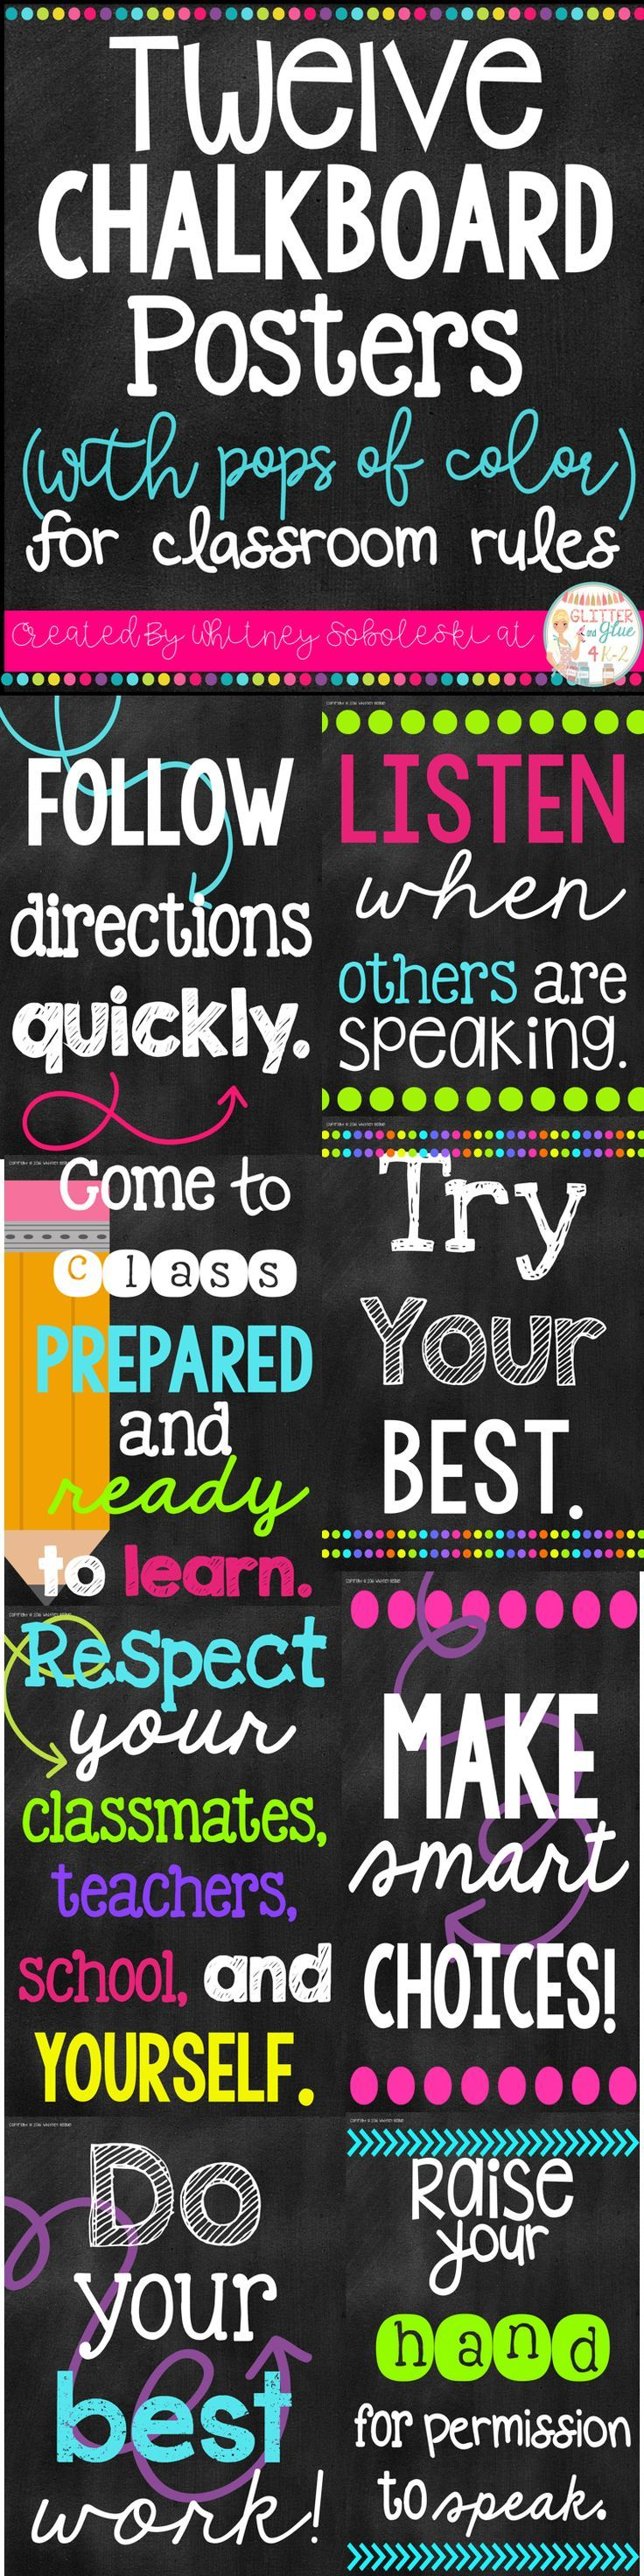 Poster design rules - Twelve Chalkboard With Pops Of Color Posters For Classroom Rules